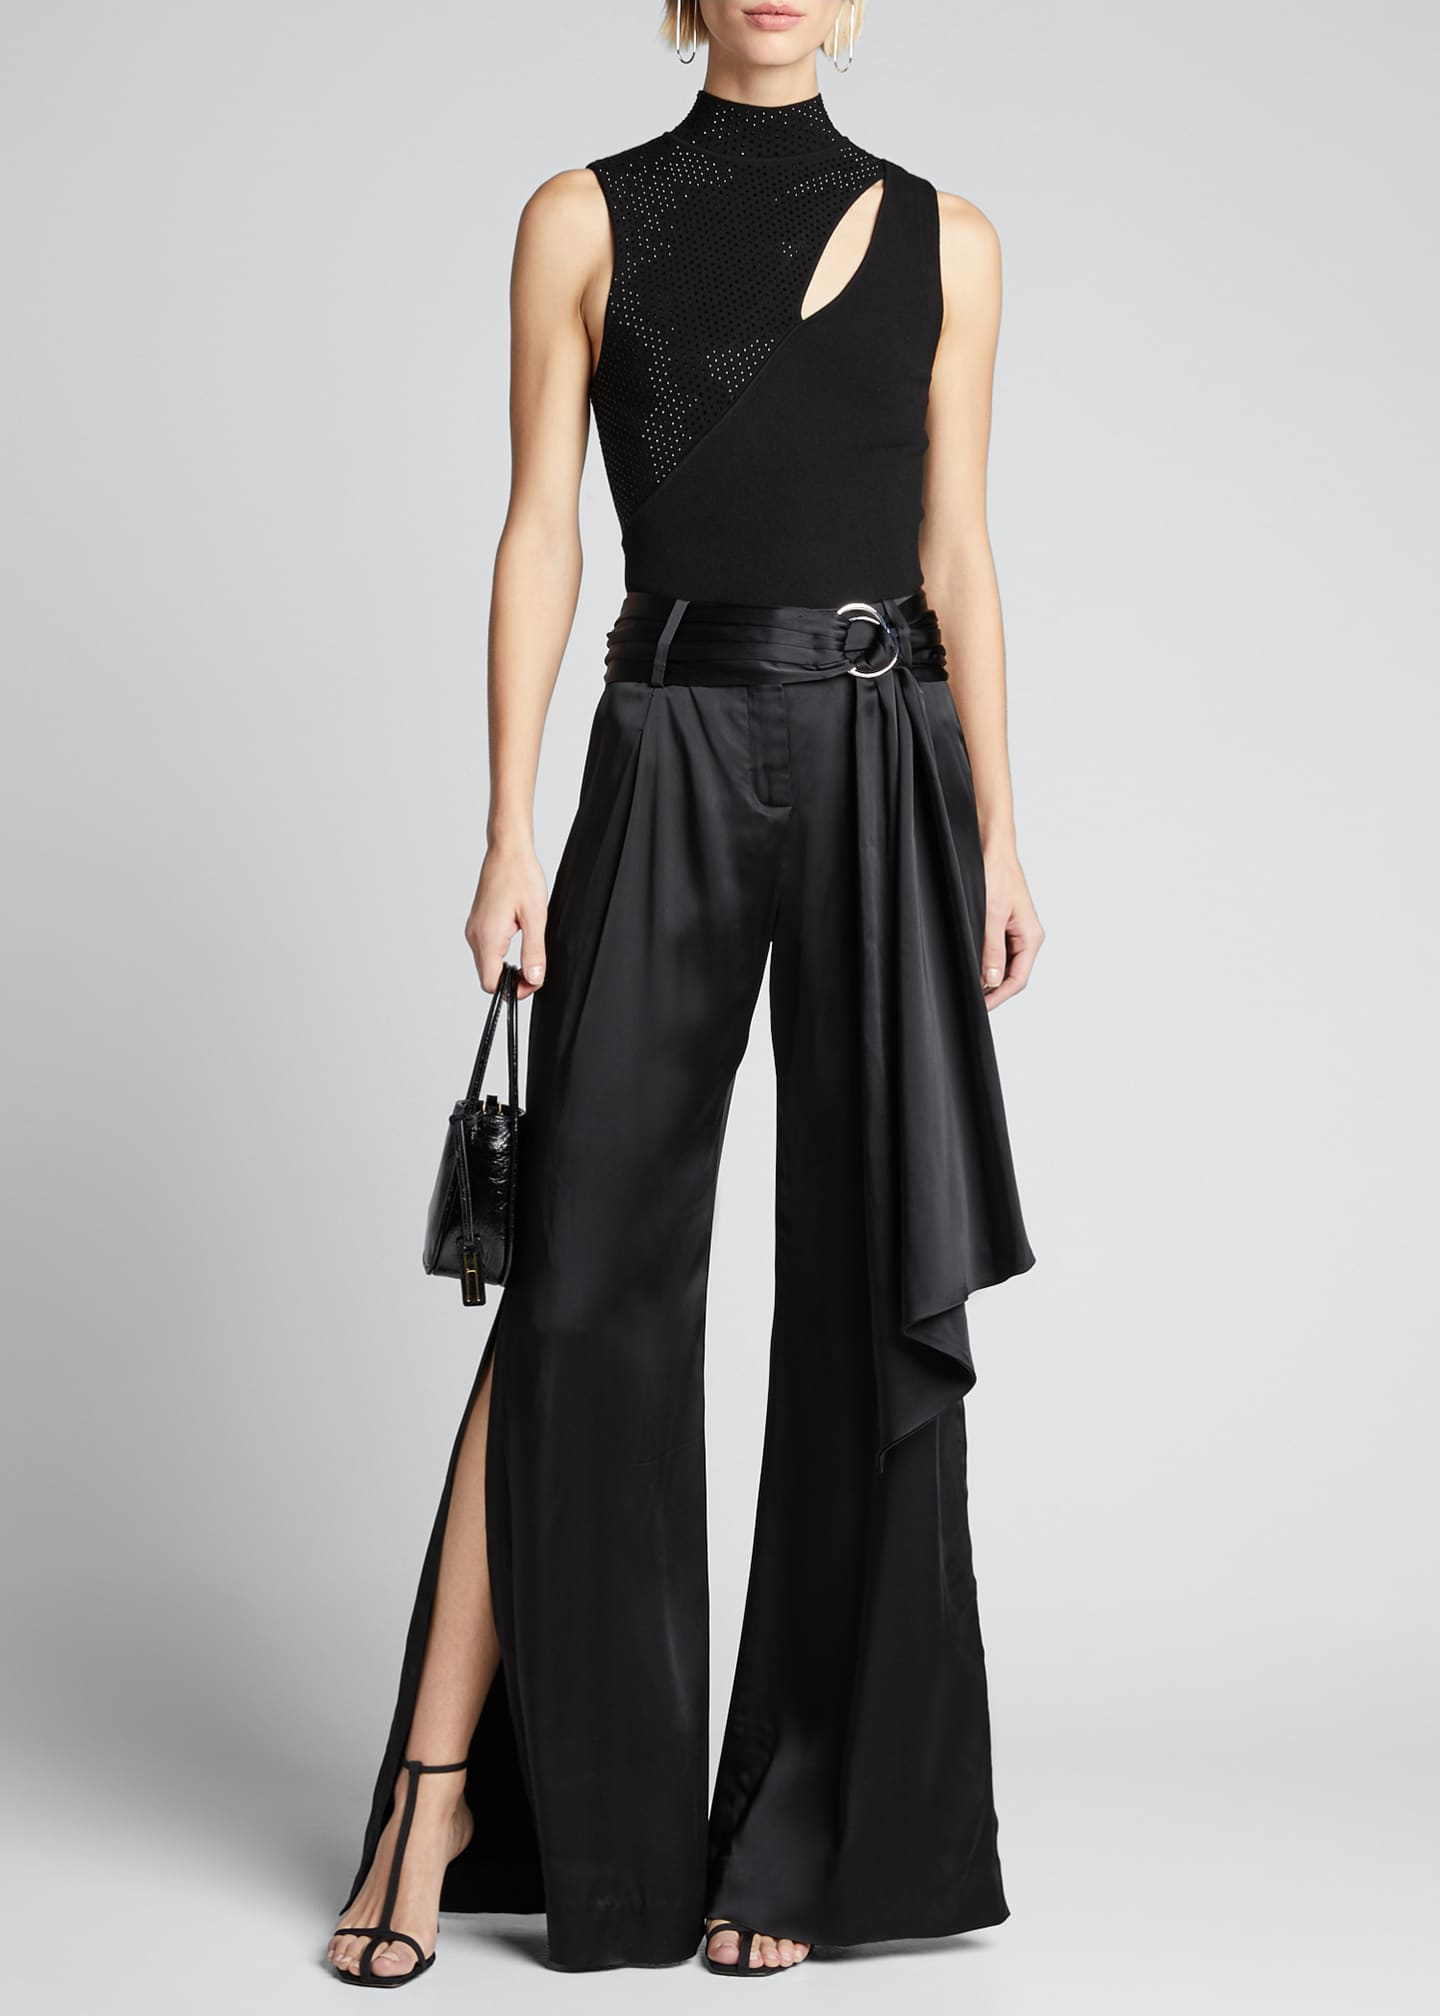 Jonathan Simkhai Fluid Satin Wide-Leg Pants with Sash